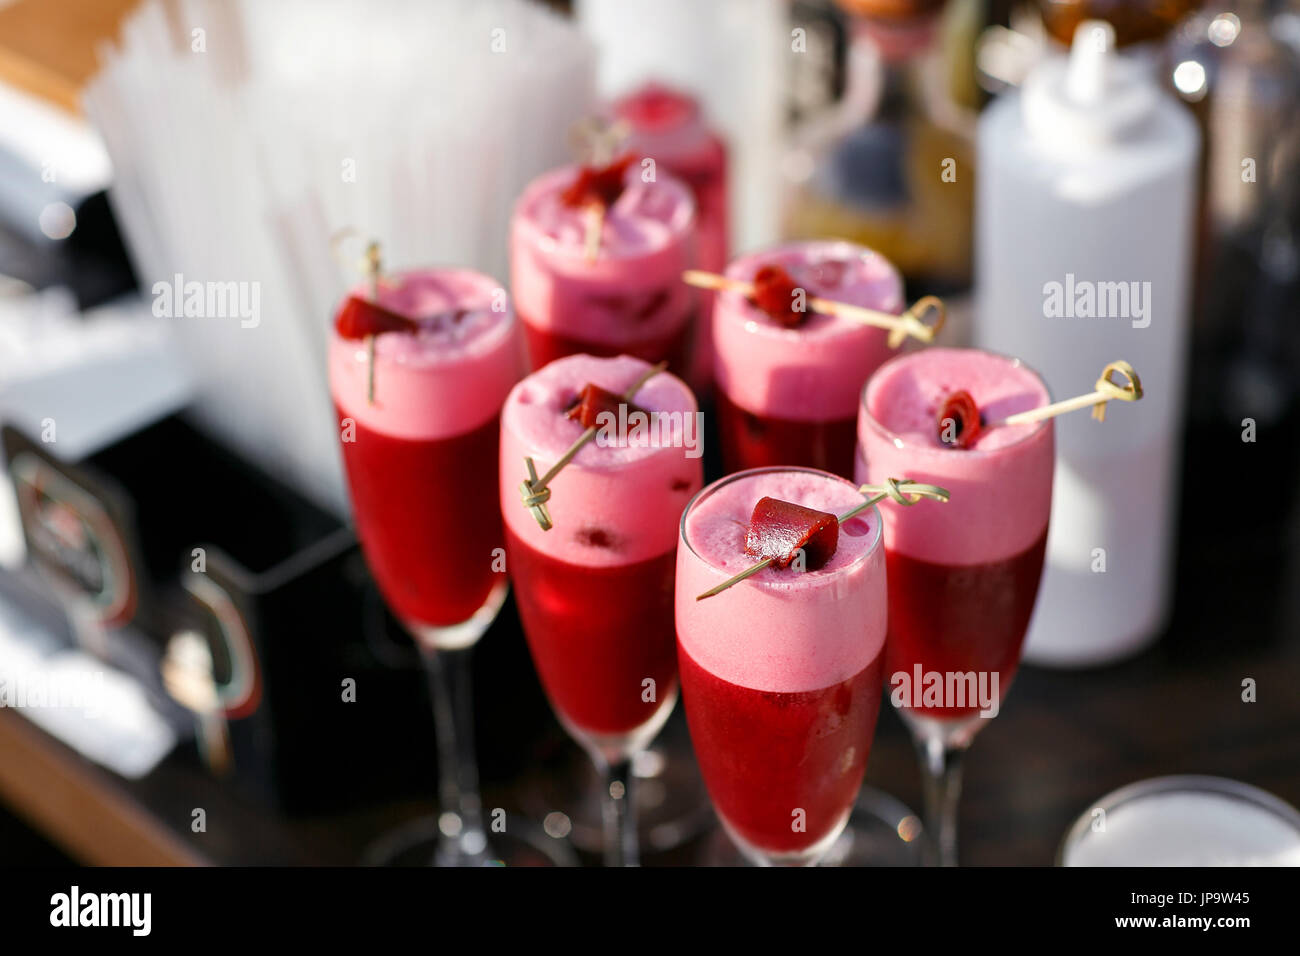 Strawberry alcoholic cocktail drinks and fruit. Stock Photo